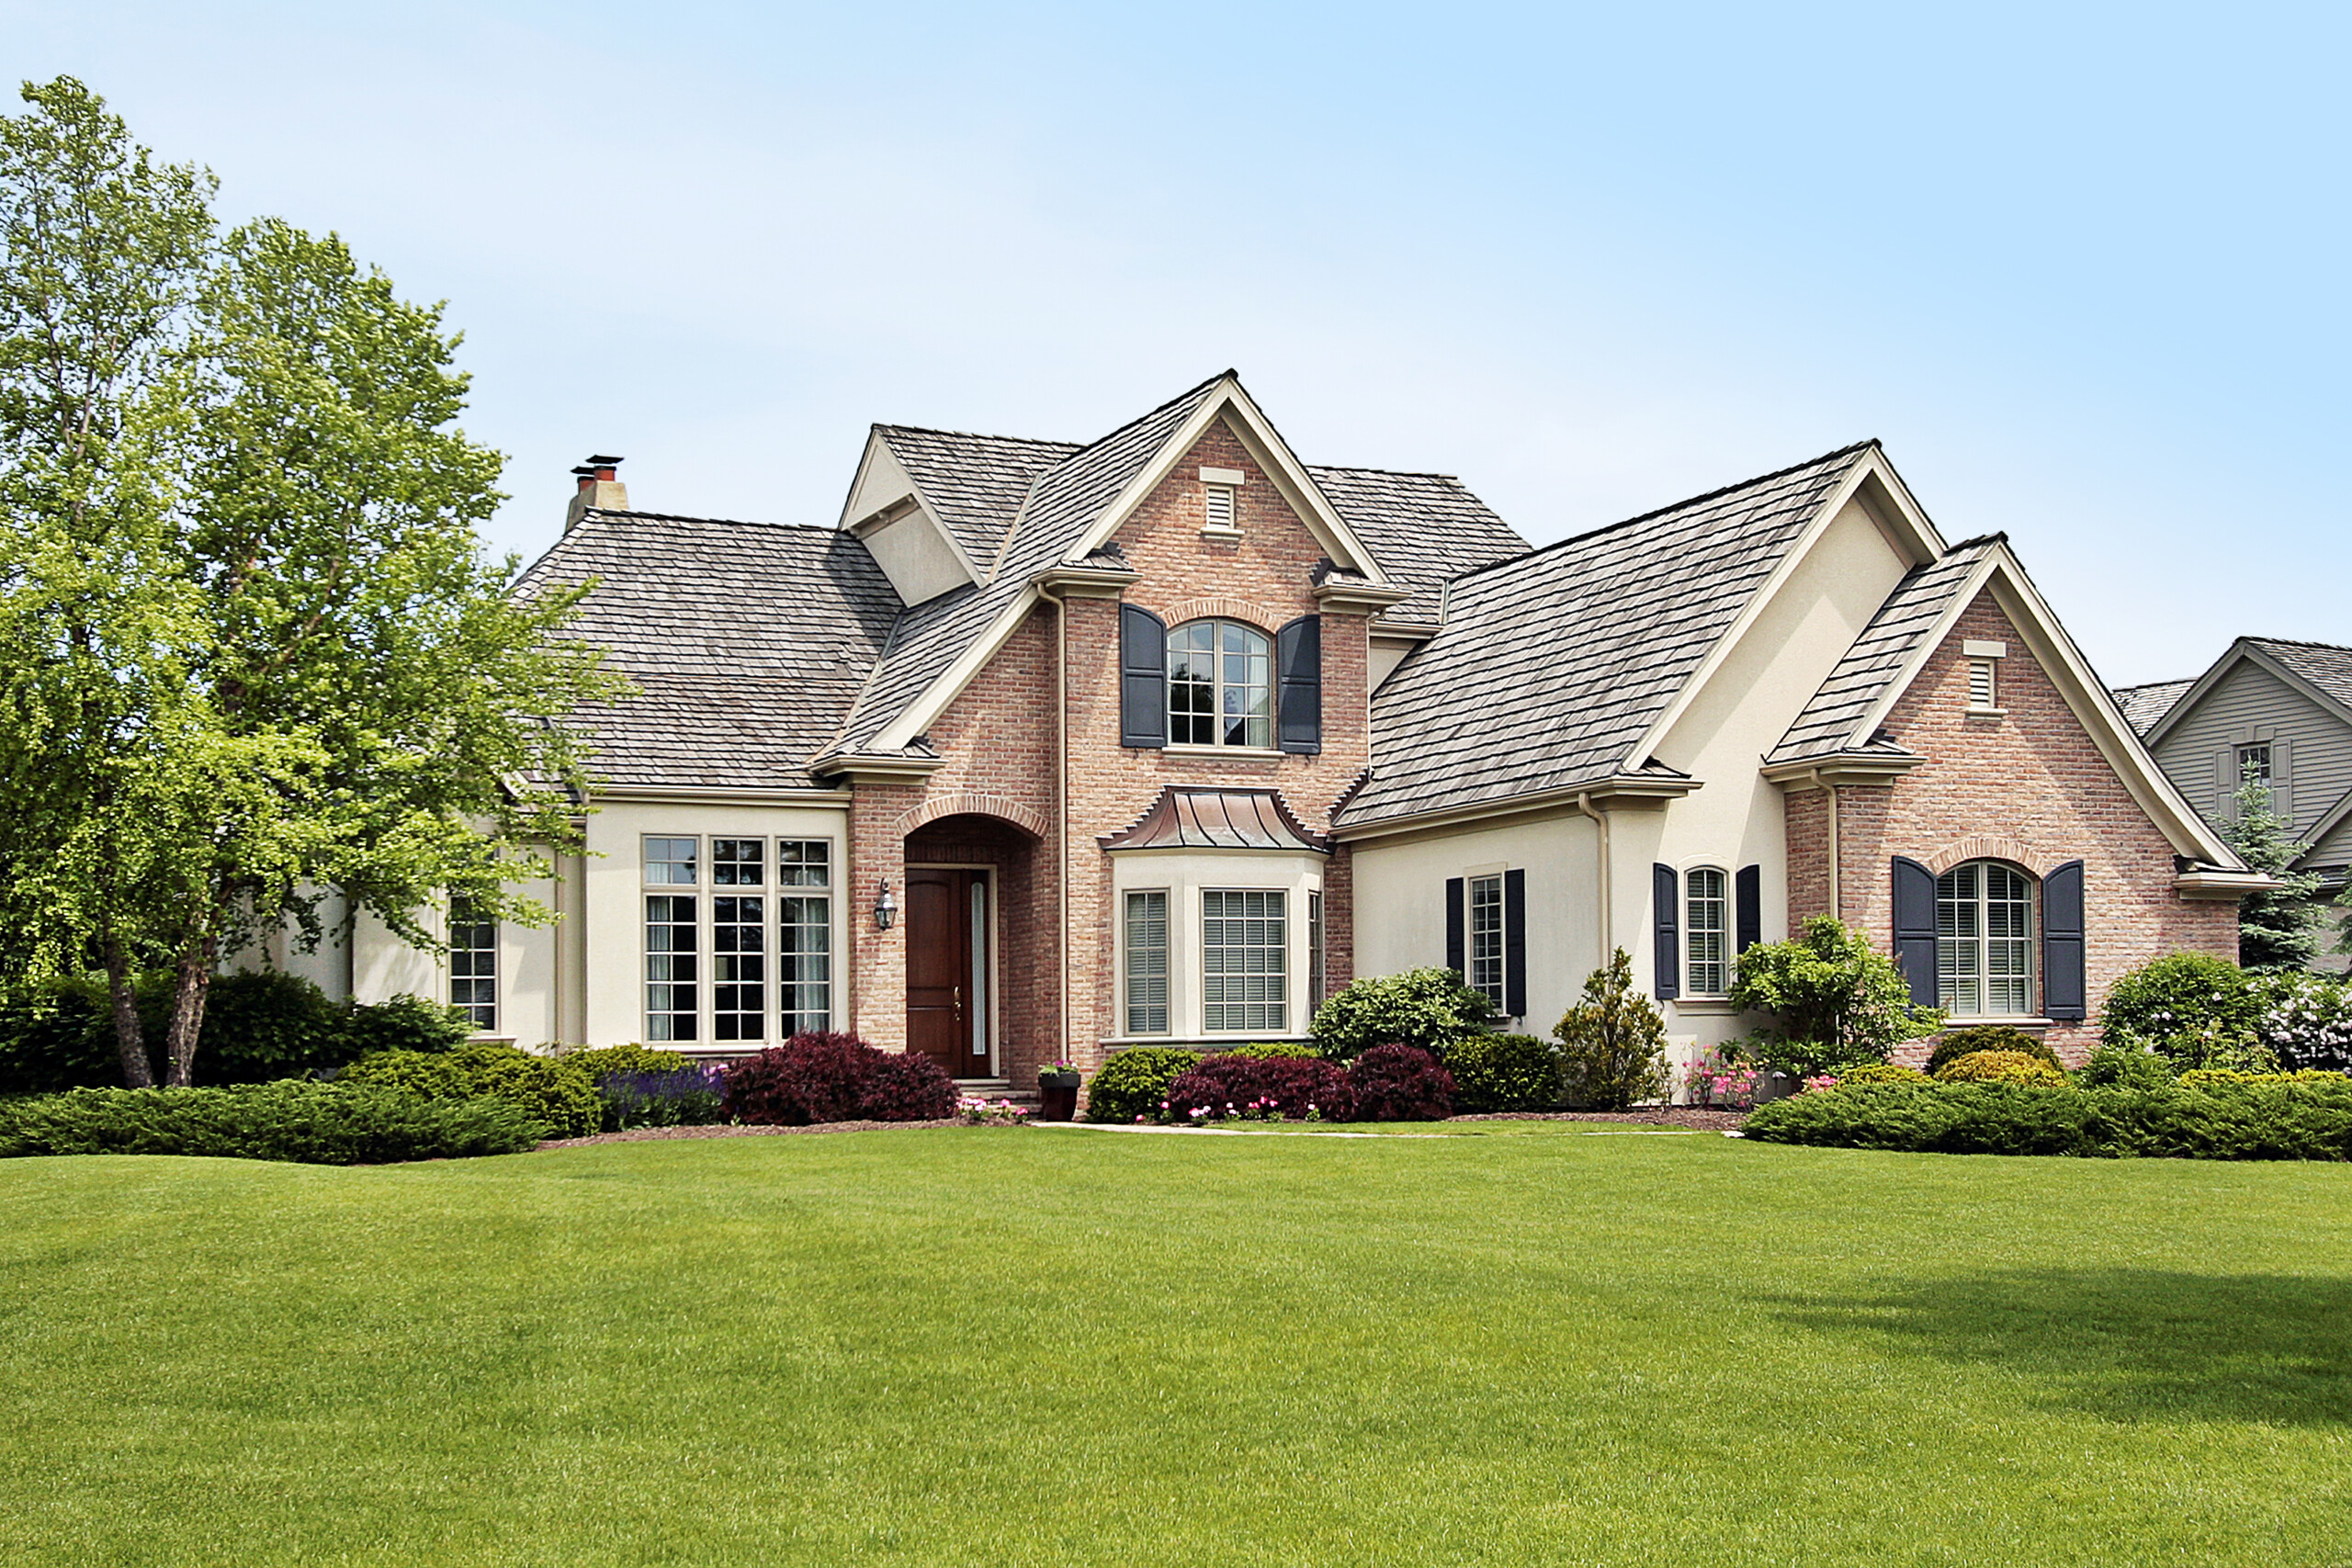 Spring Home Maintenance Checklist - How To Spruce Up Your Home When Winter Passes